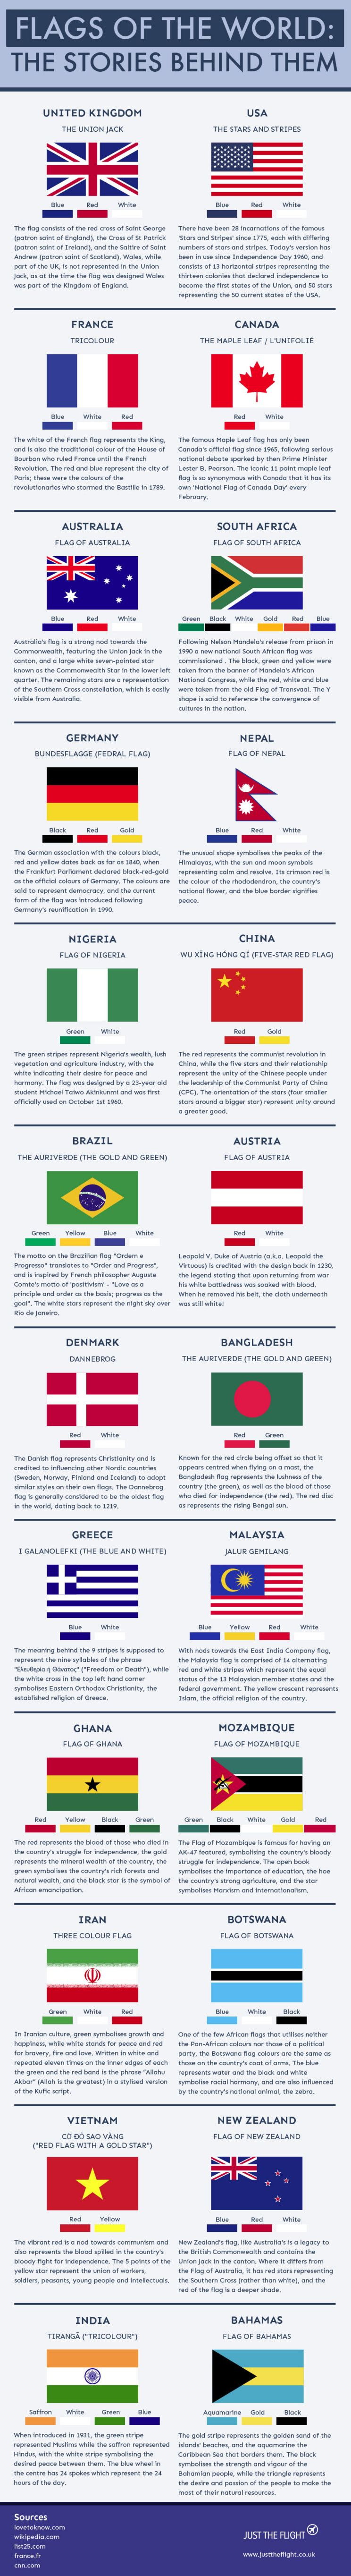 If the world were a village of 100 people lesson plan - If The World Were Only About 100 People Awesome Infografic See More Flags